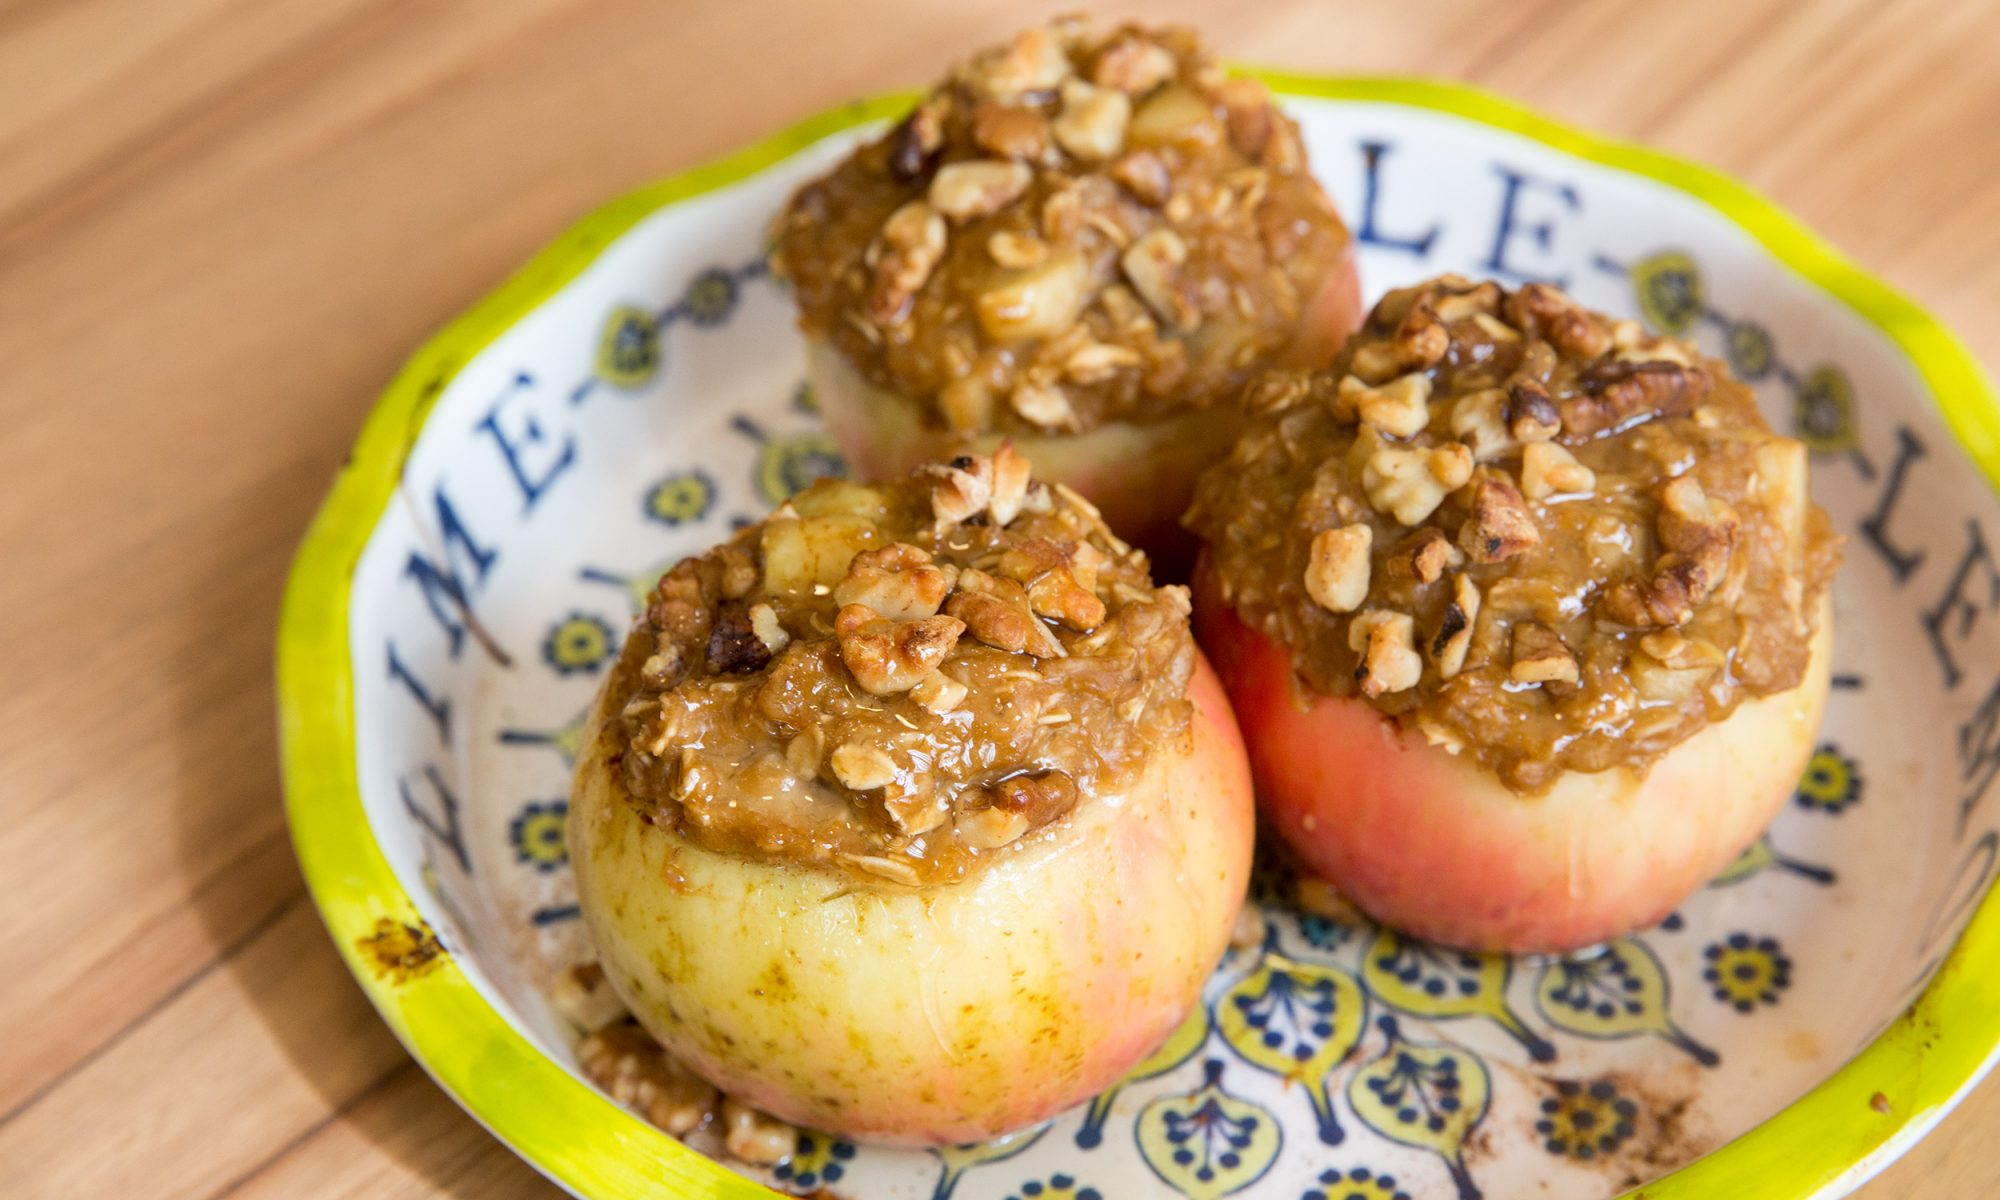 Stuff Your Baked Apples with Oatmeal and Bliss